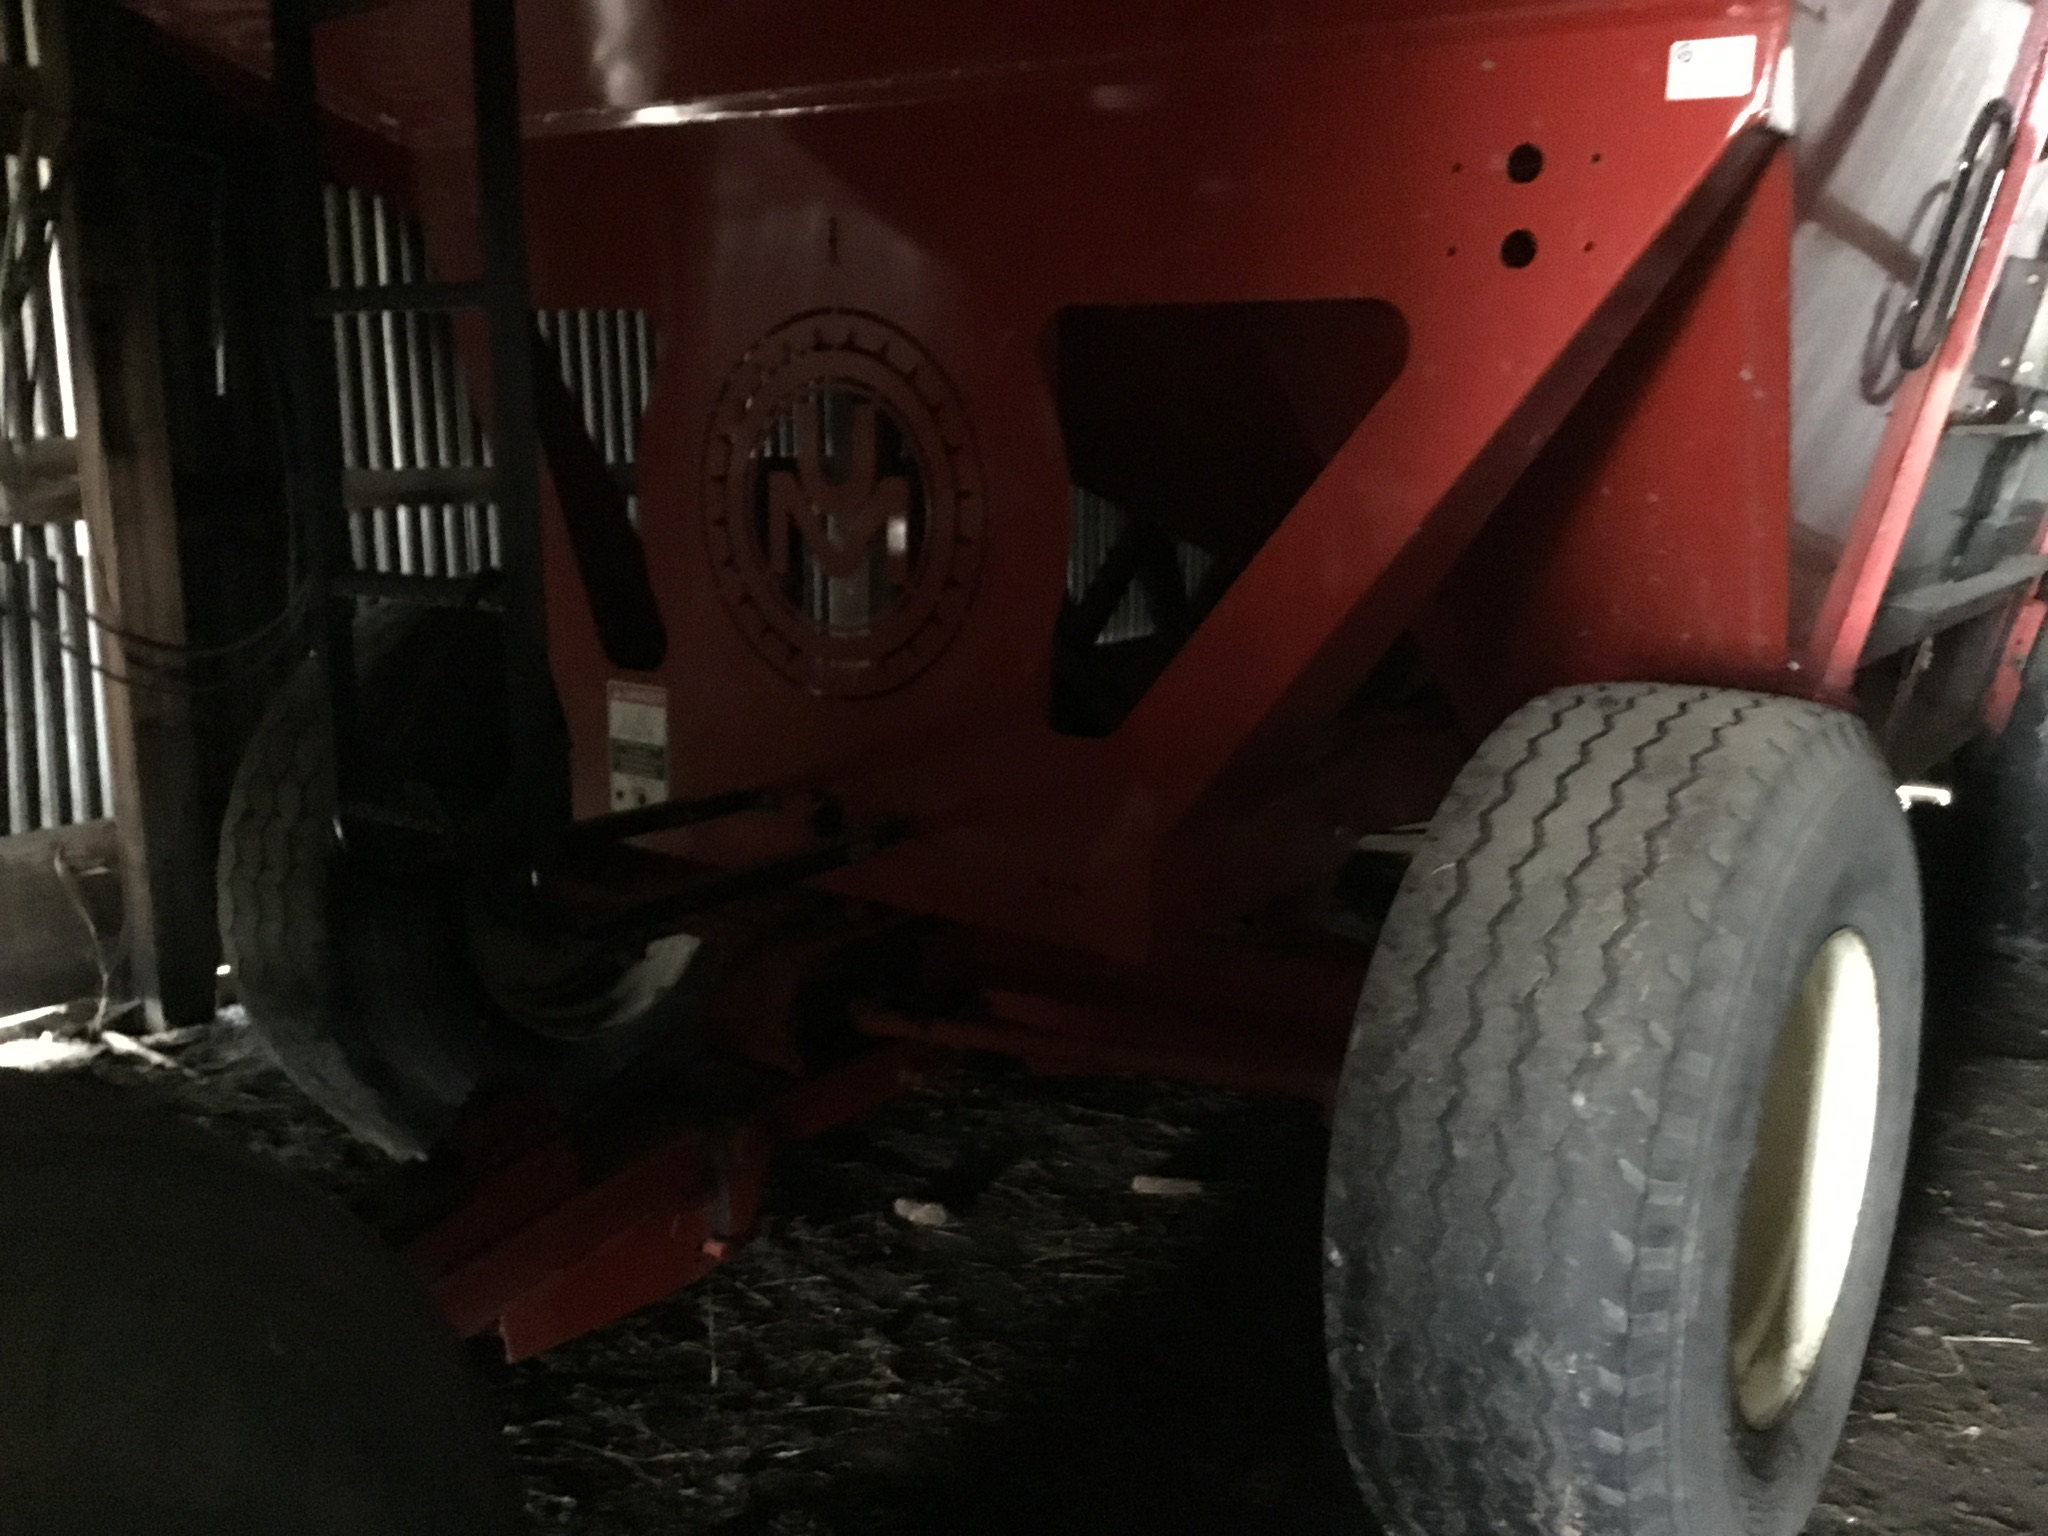 Unverferth 530 Side Dump Wagon, Brakes, 425-65R-22.5 Tires, Serial #B206-50-119, Red, Sharp - Image 6 of 6